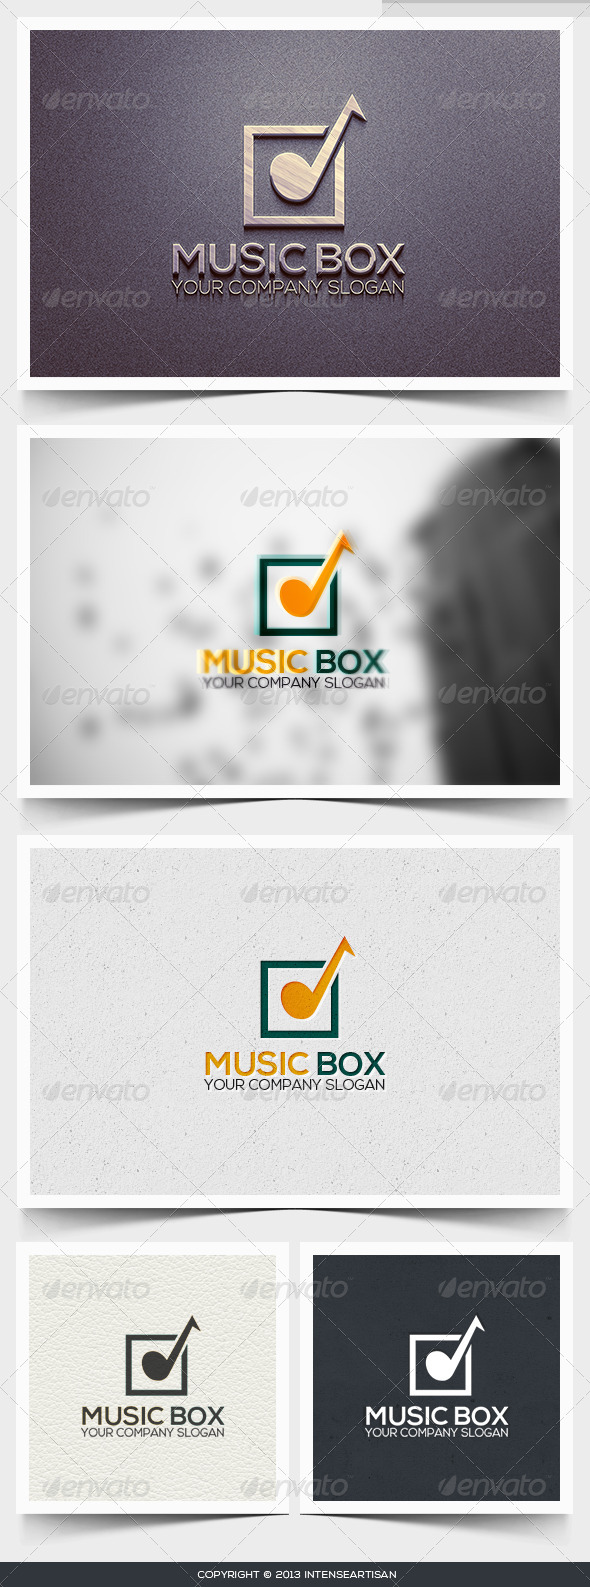 Music Box Logo Template - Objects Logo Templates